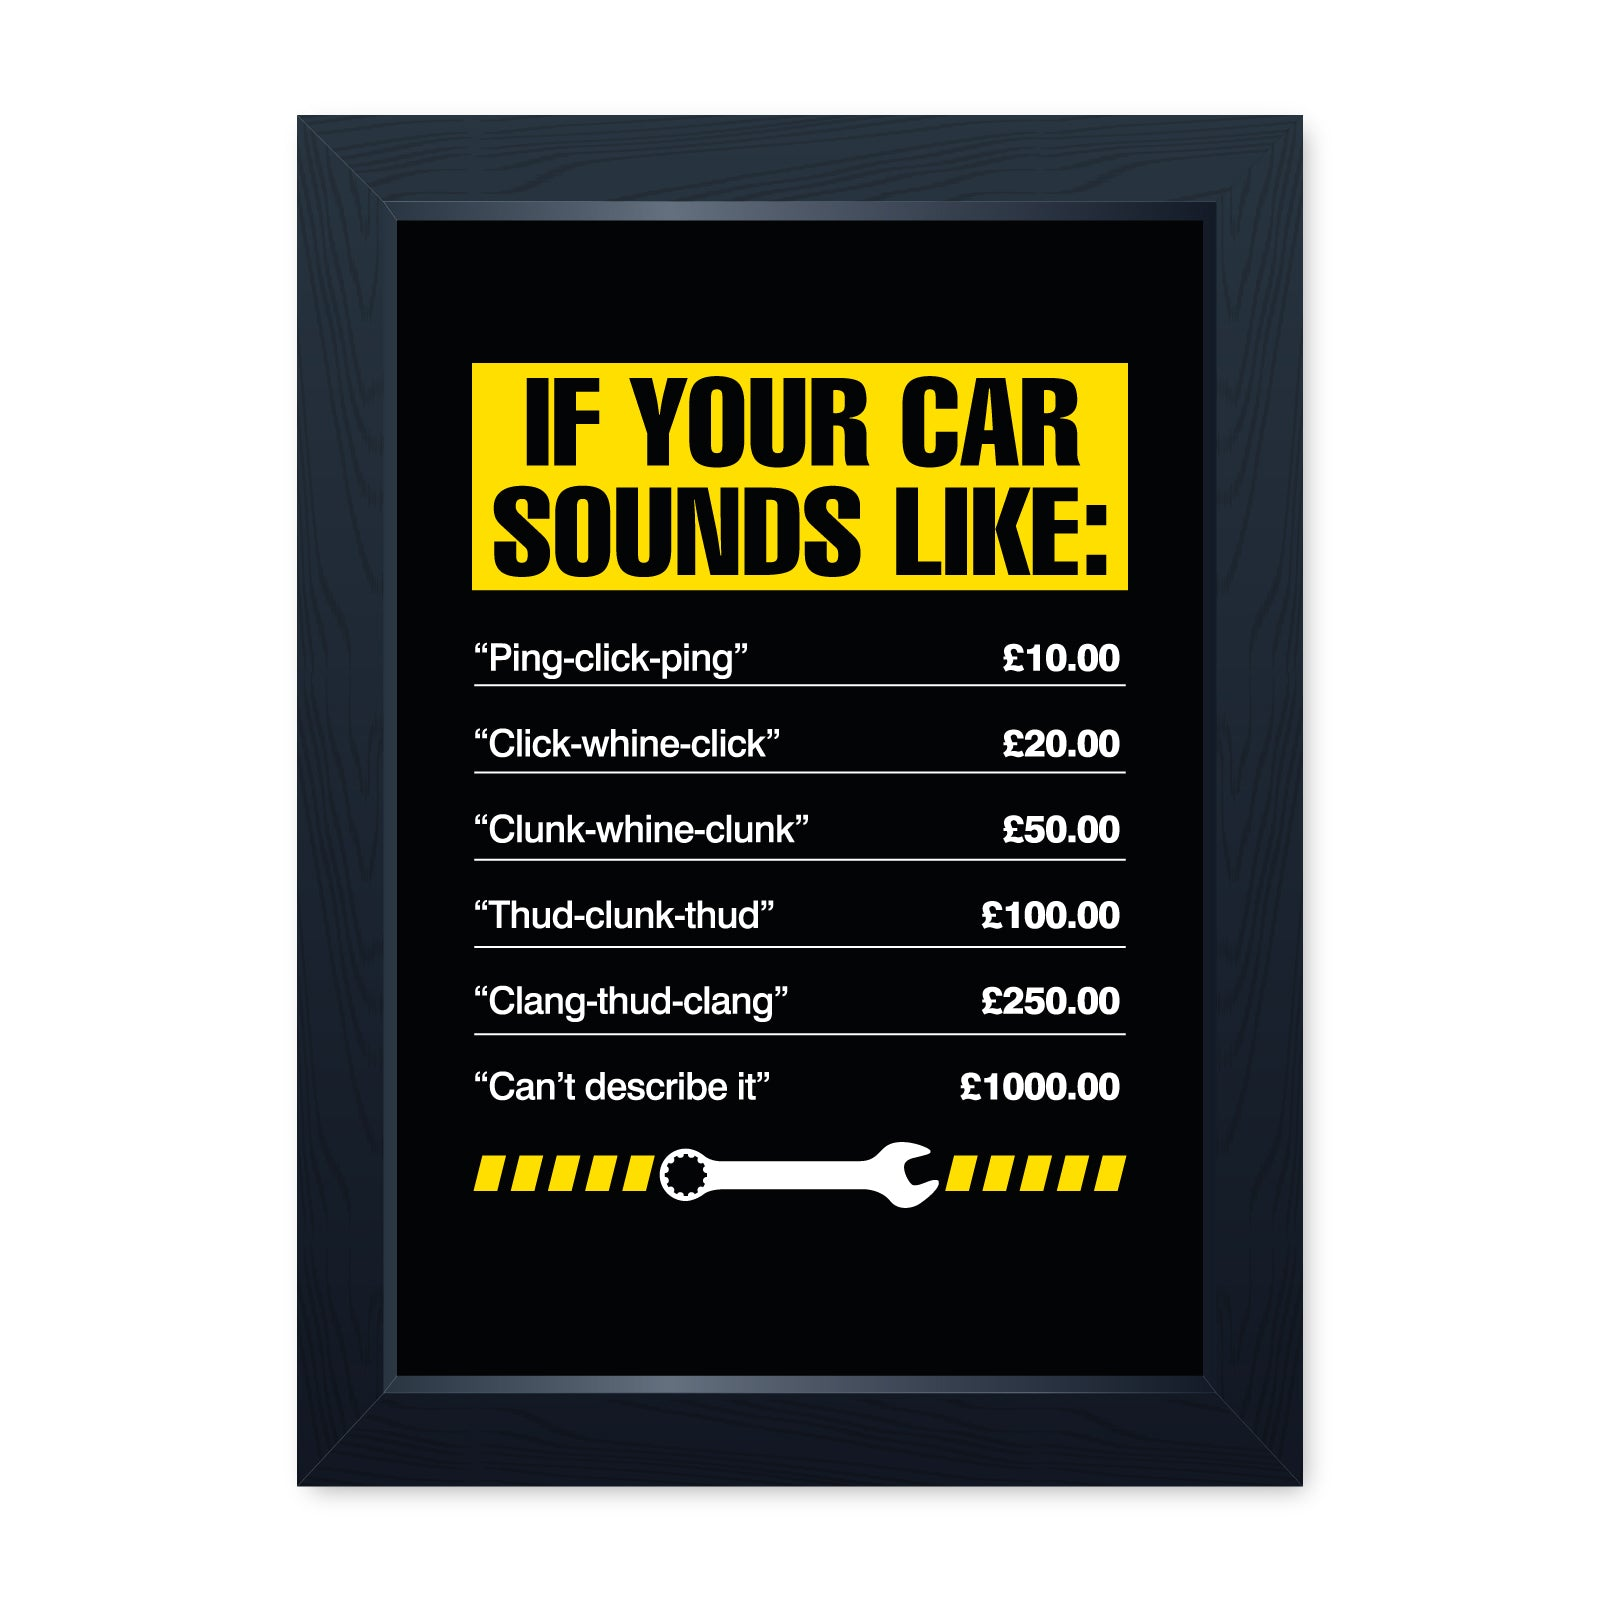 If Your Car Sounds Like, Funny Framed Print - Home Decor Kitchen Bathroom Man Cave Shed Garage Wall Art